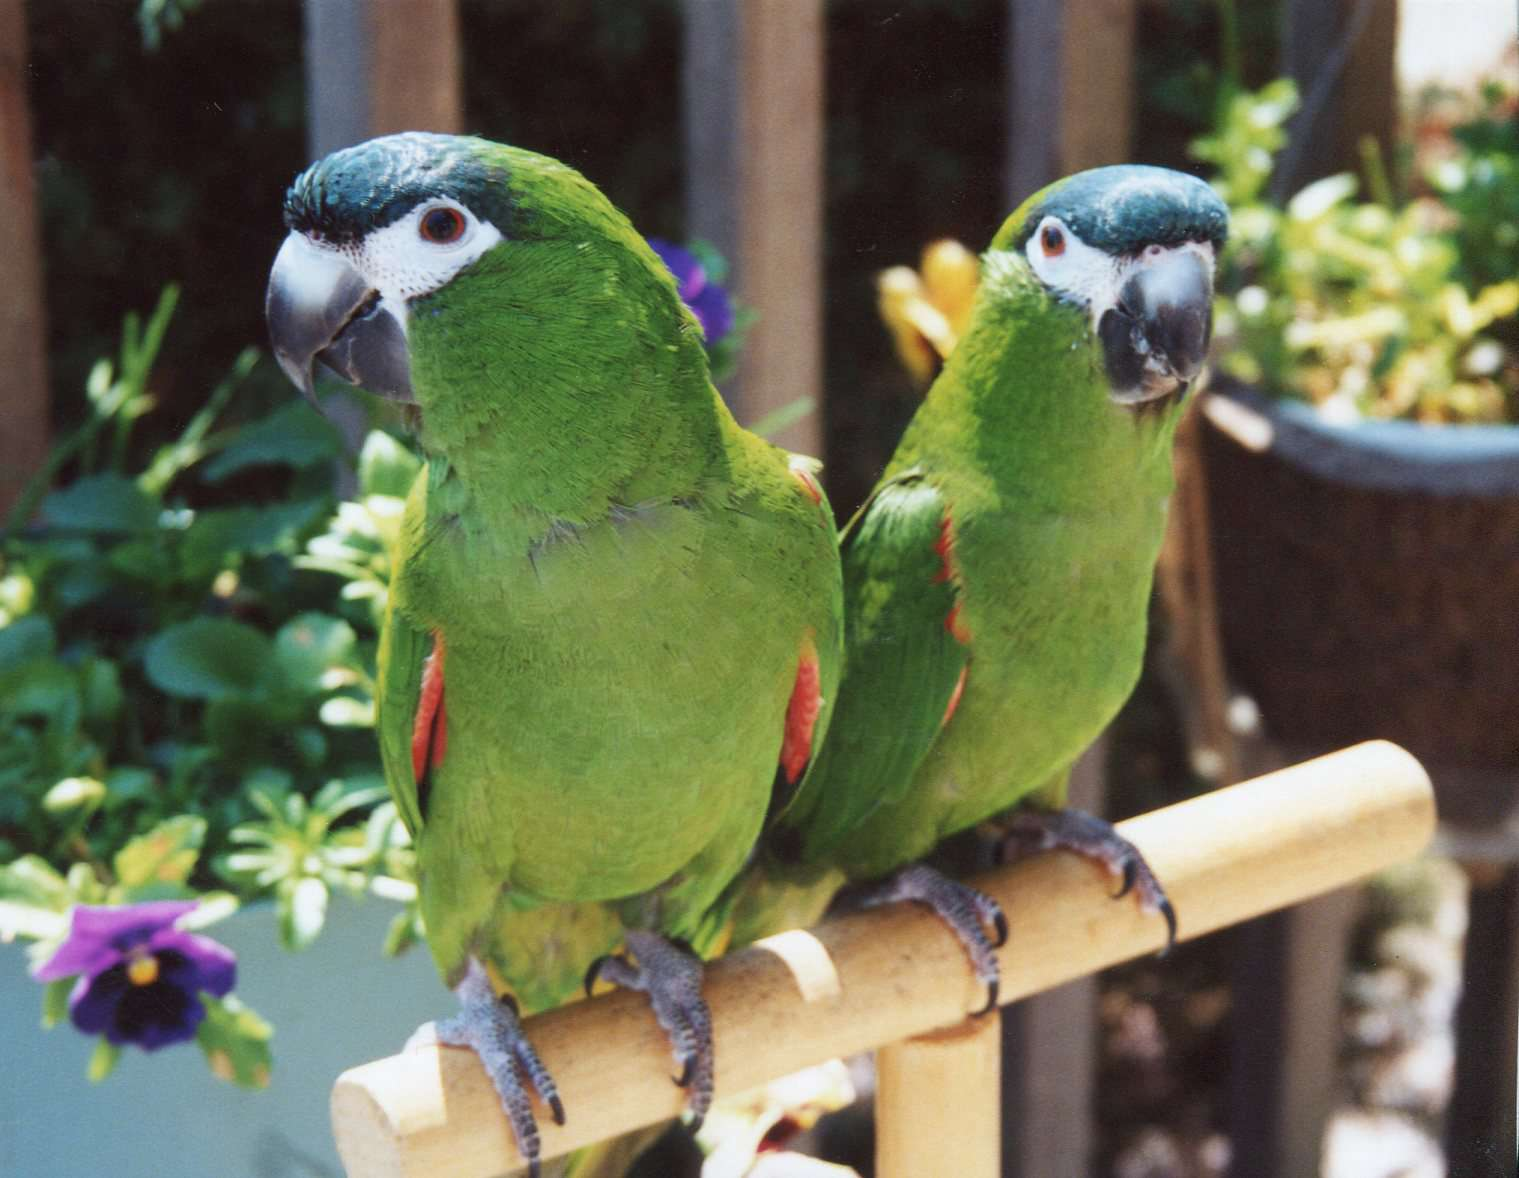 Two green Hahn's macaws sitting on a ledge.